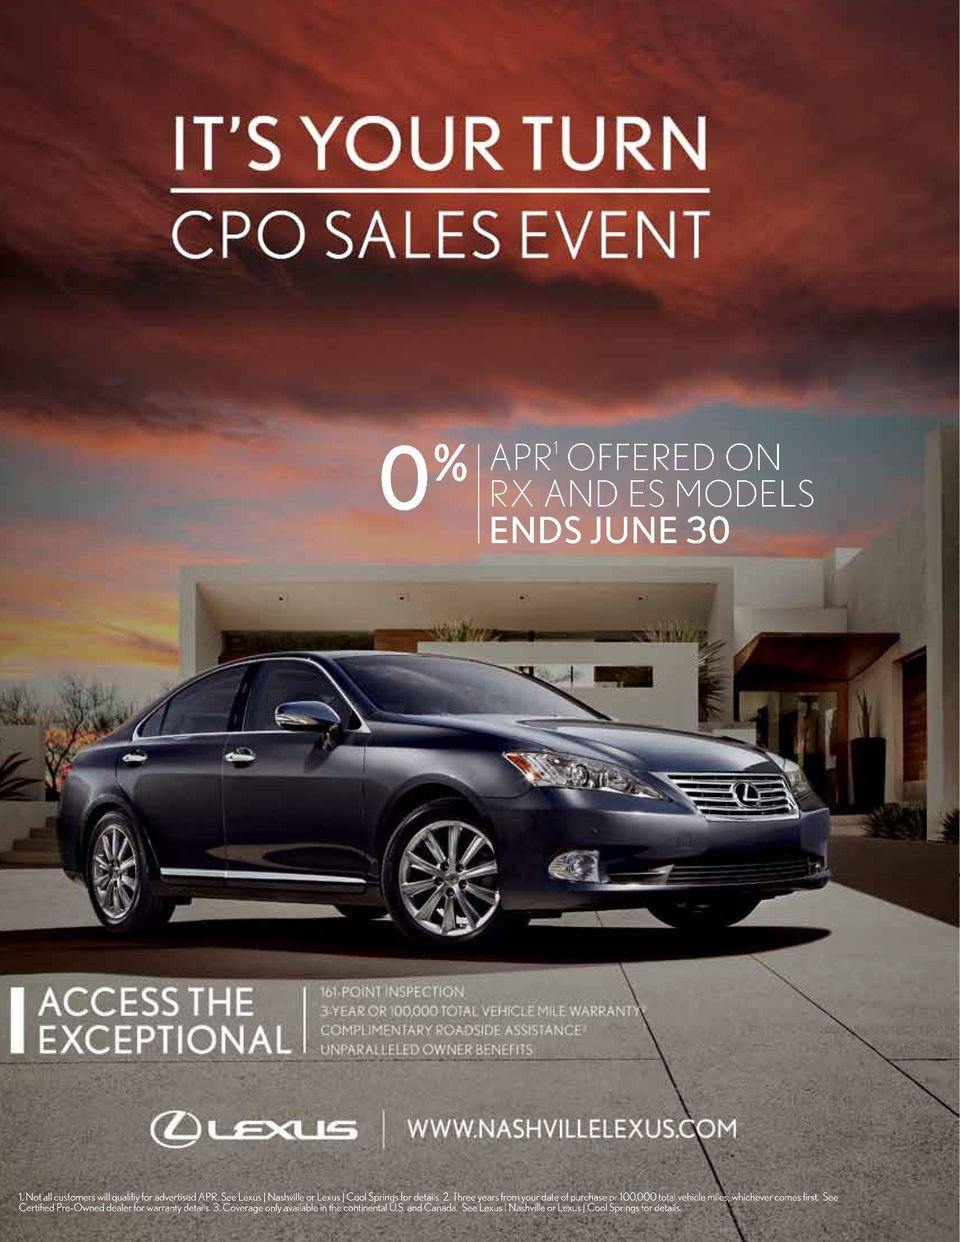 See Lexus Nashville or Lexus Cool Springs for details. 2. Three years from your date of purchase or 100,000 total vehicle miles, whichever comes first.